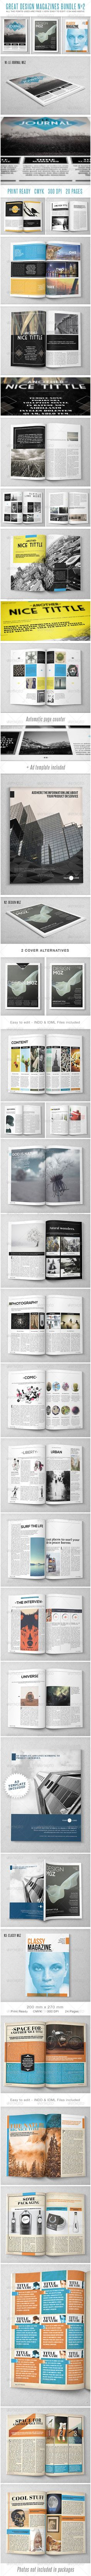 Tons of inspirational magazine spread work. it looks ascetically pleasing because it follows and breaks tons of rules!  I could use any of these ideas to incorporate them into my spread!